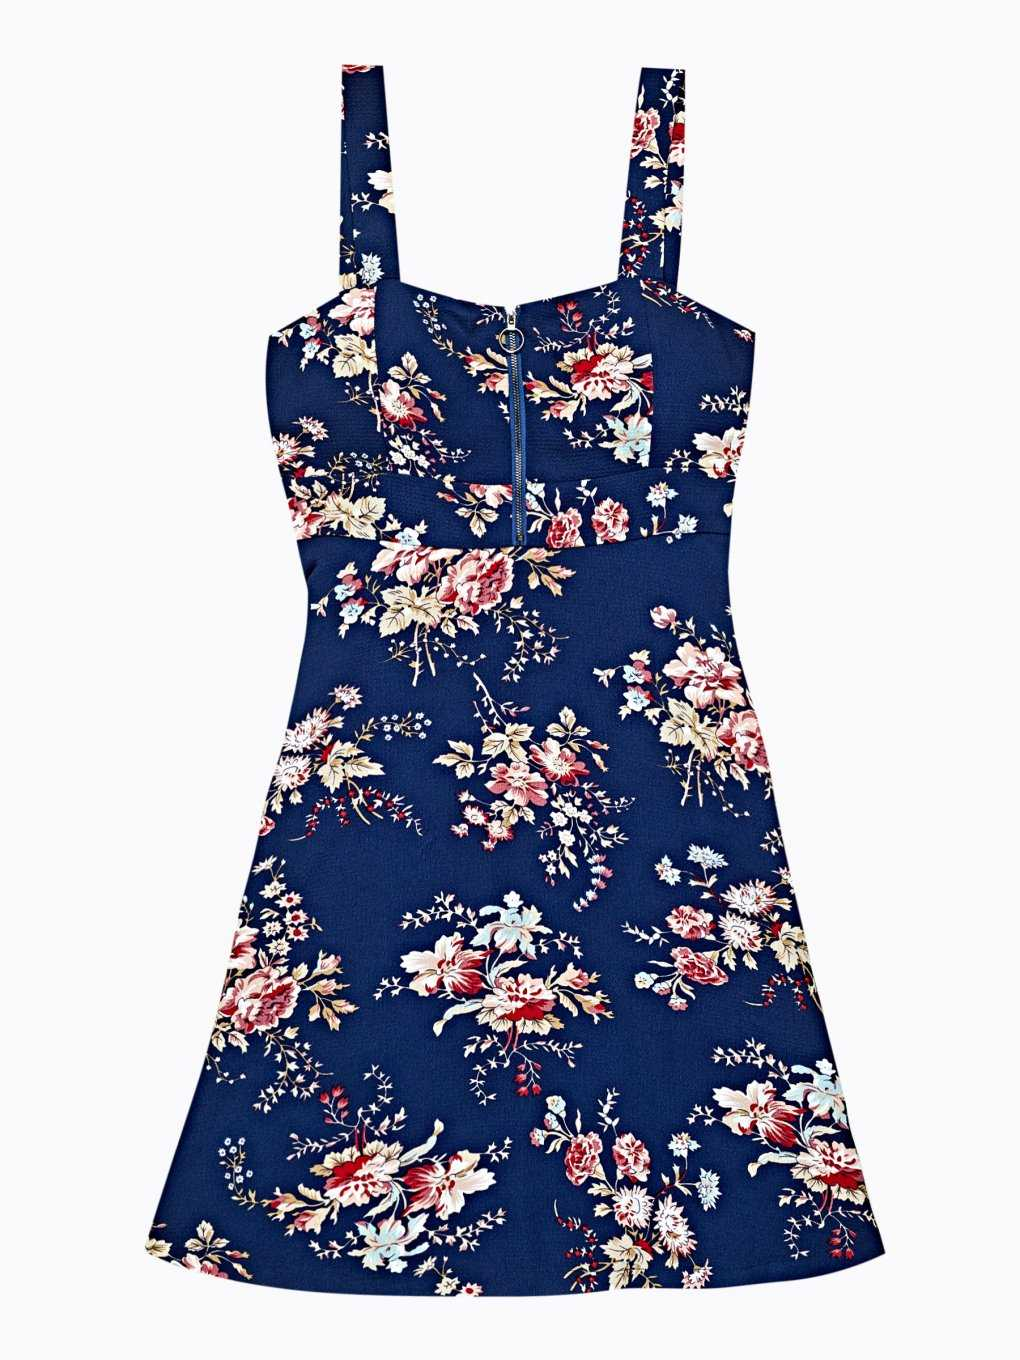 Floral print dress with zipper